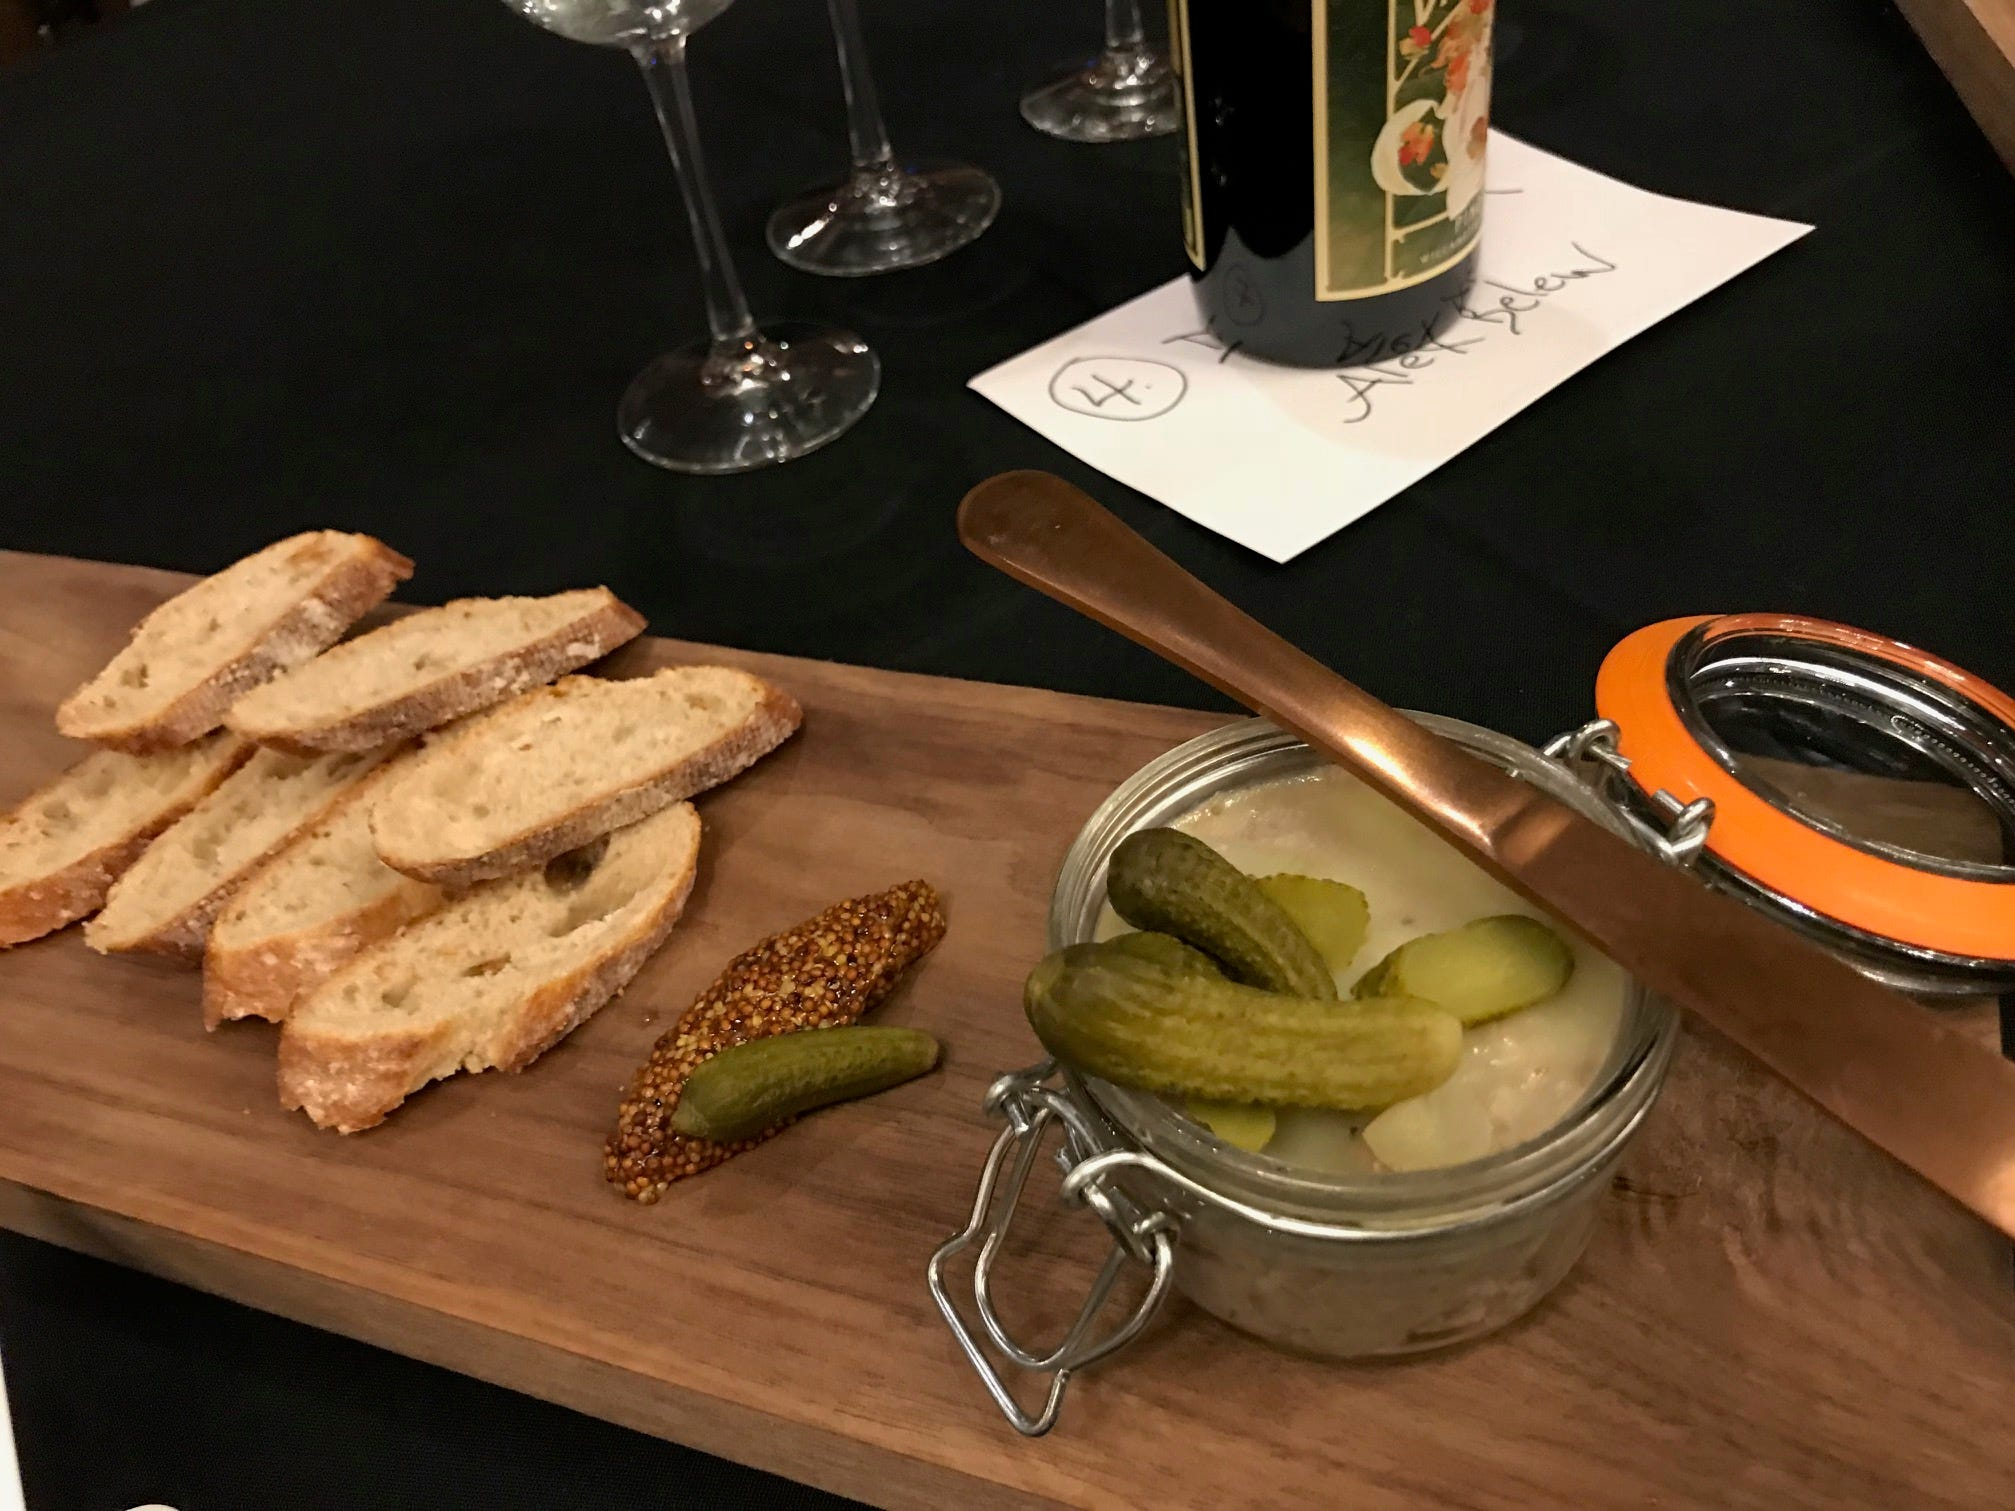 Spiced pork rillette with pickles and mustard was one of two items served by Dallas & Jane chef/owner Alex Belew at the 2019 Taste of Elegance.